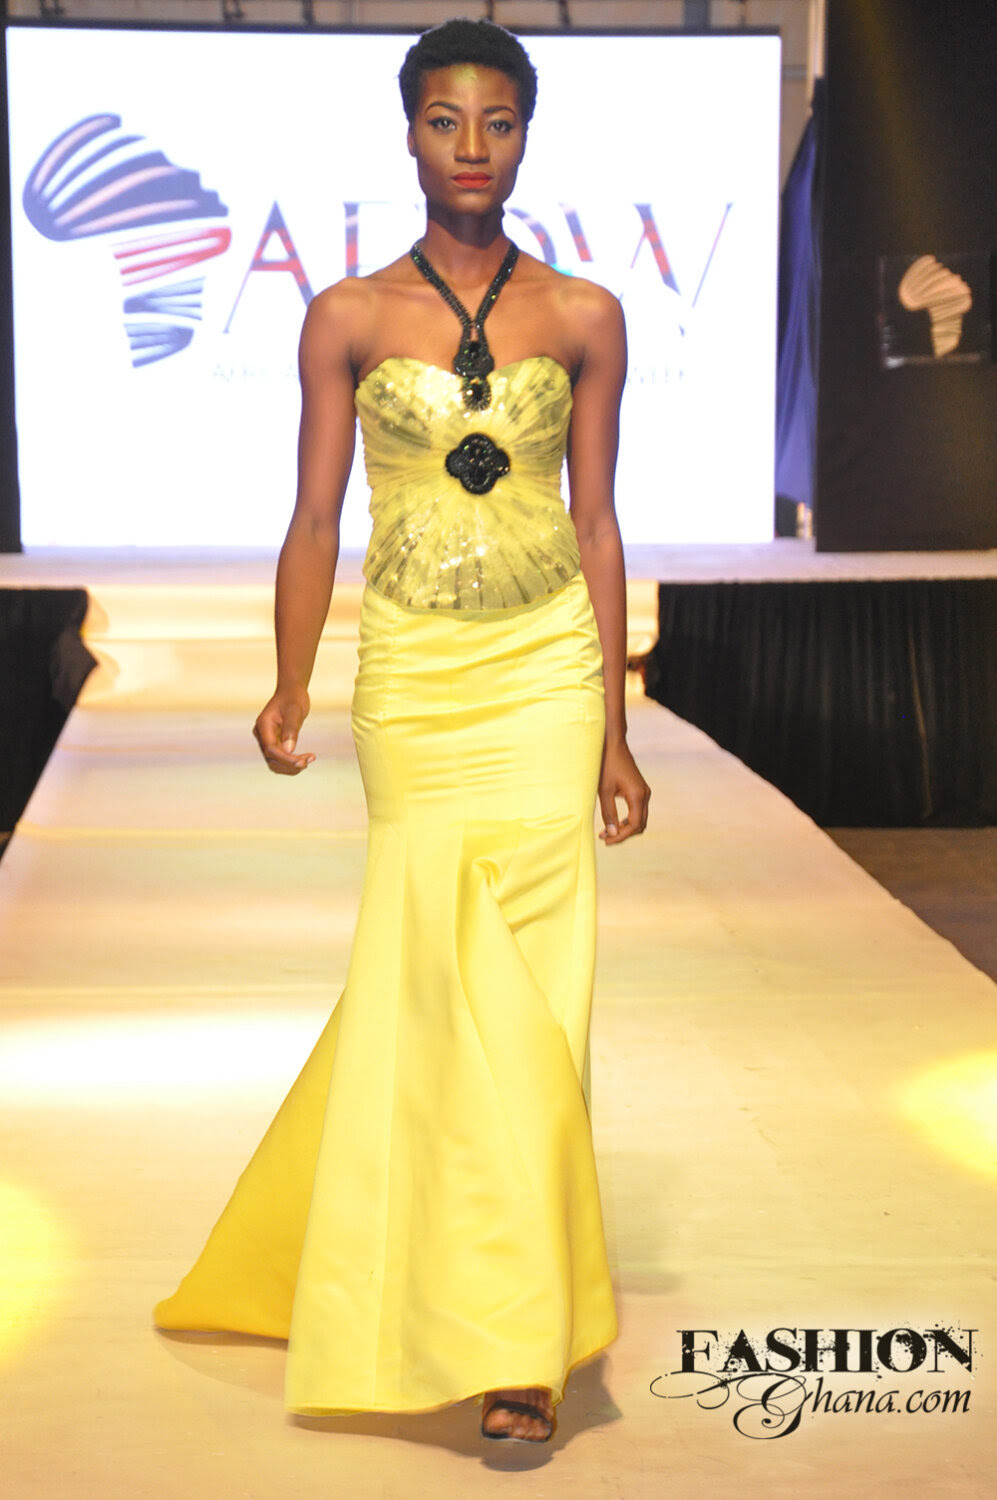 Mustafa Hassanali 3 African Fashion and Design Week 2015